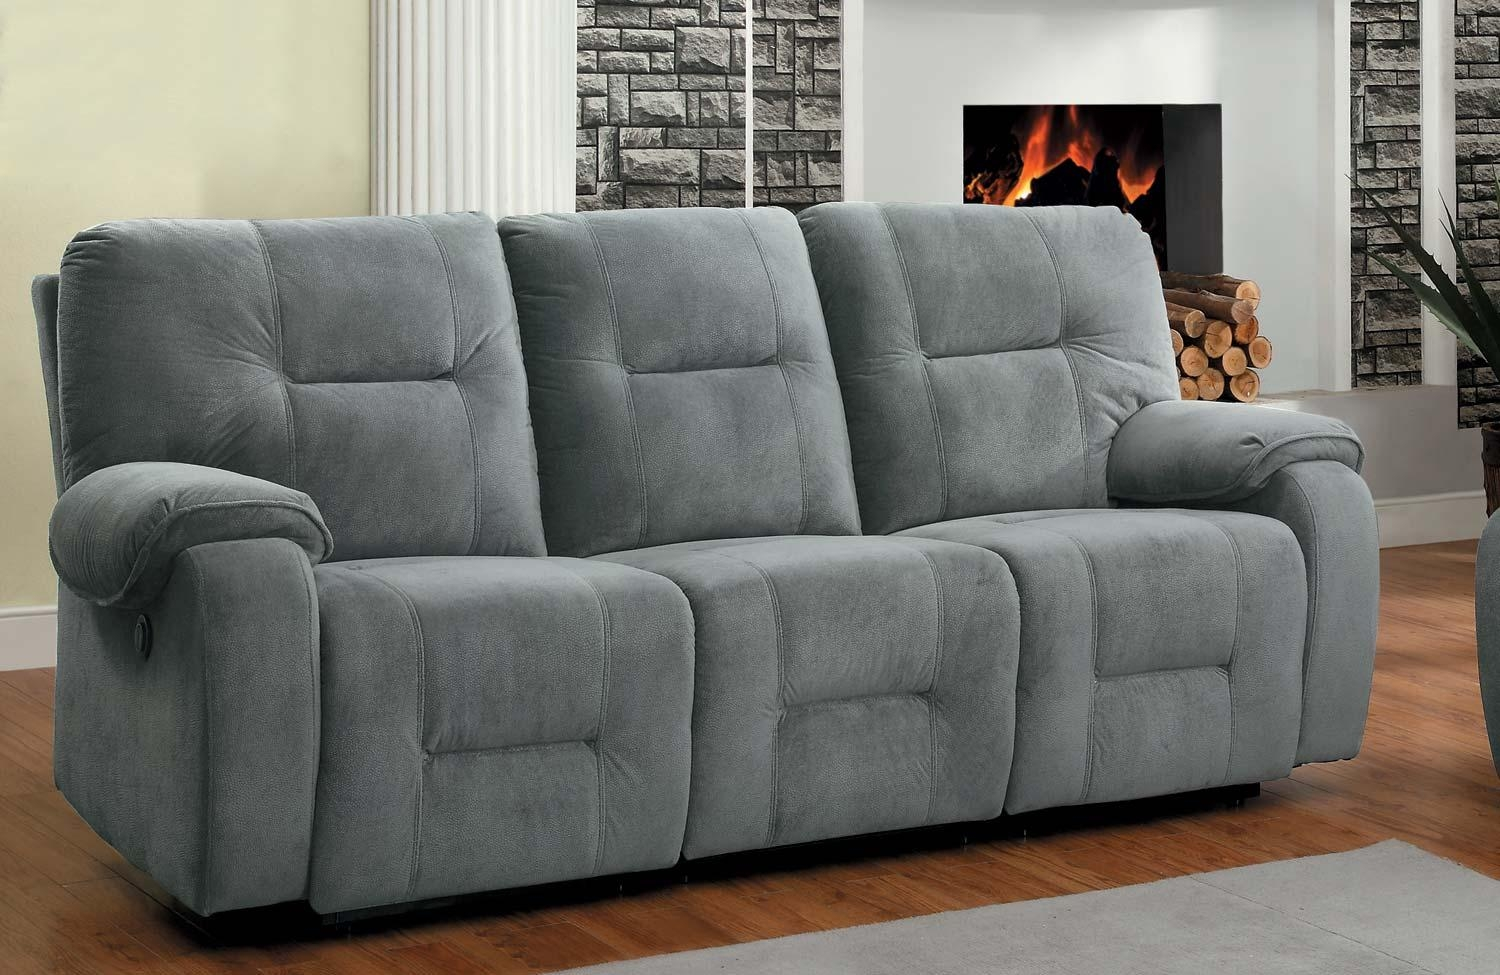 Homelegance Bensonhurst Power Double Reclining Sofa – Blue Grey Inside Blue Grey Sofas (Image 10 of 20)